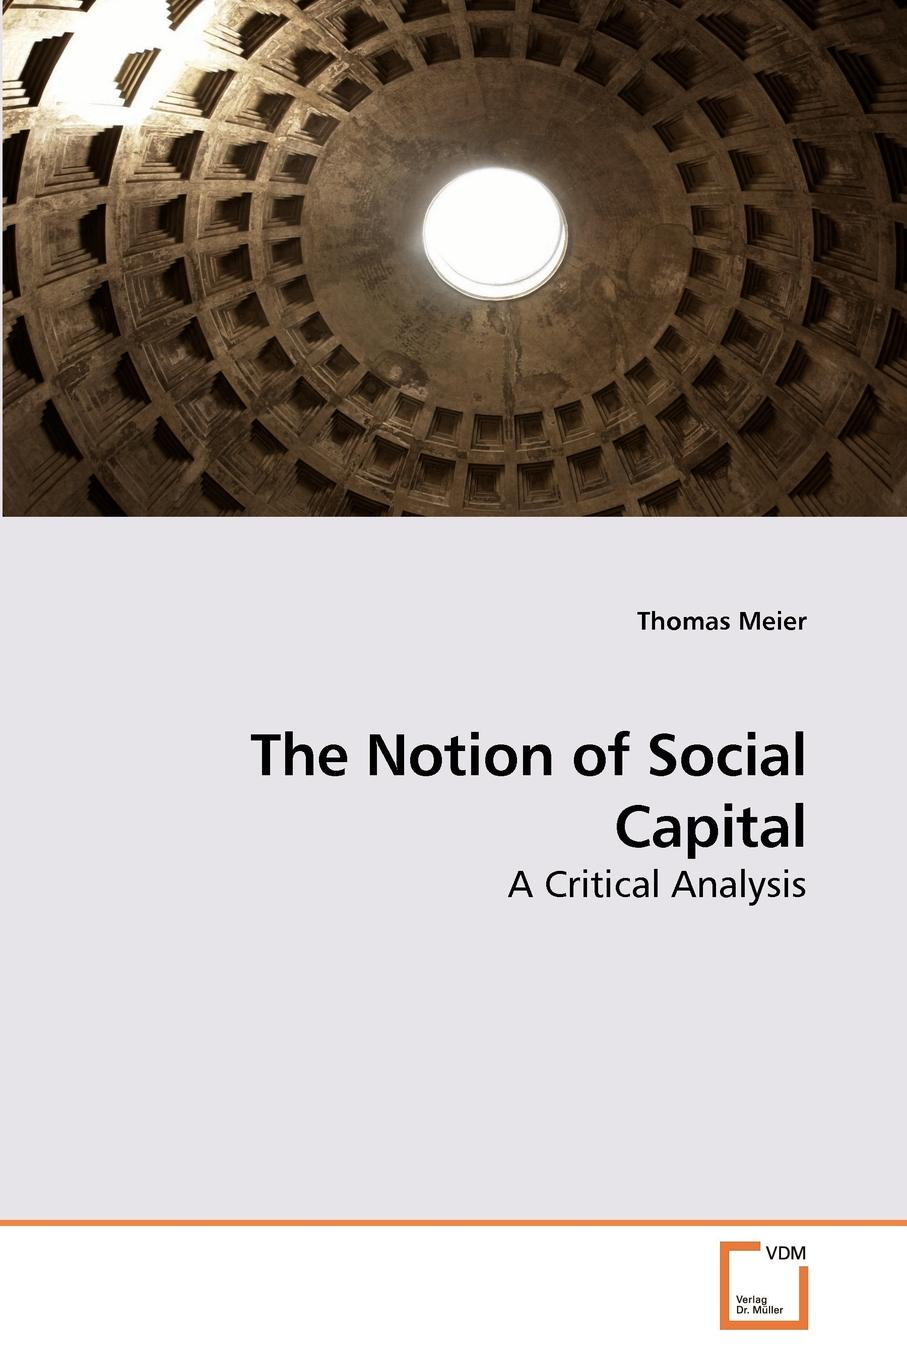 Thomas Meier The Notion of Social Capital capital inicial recife